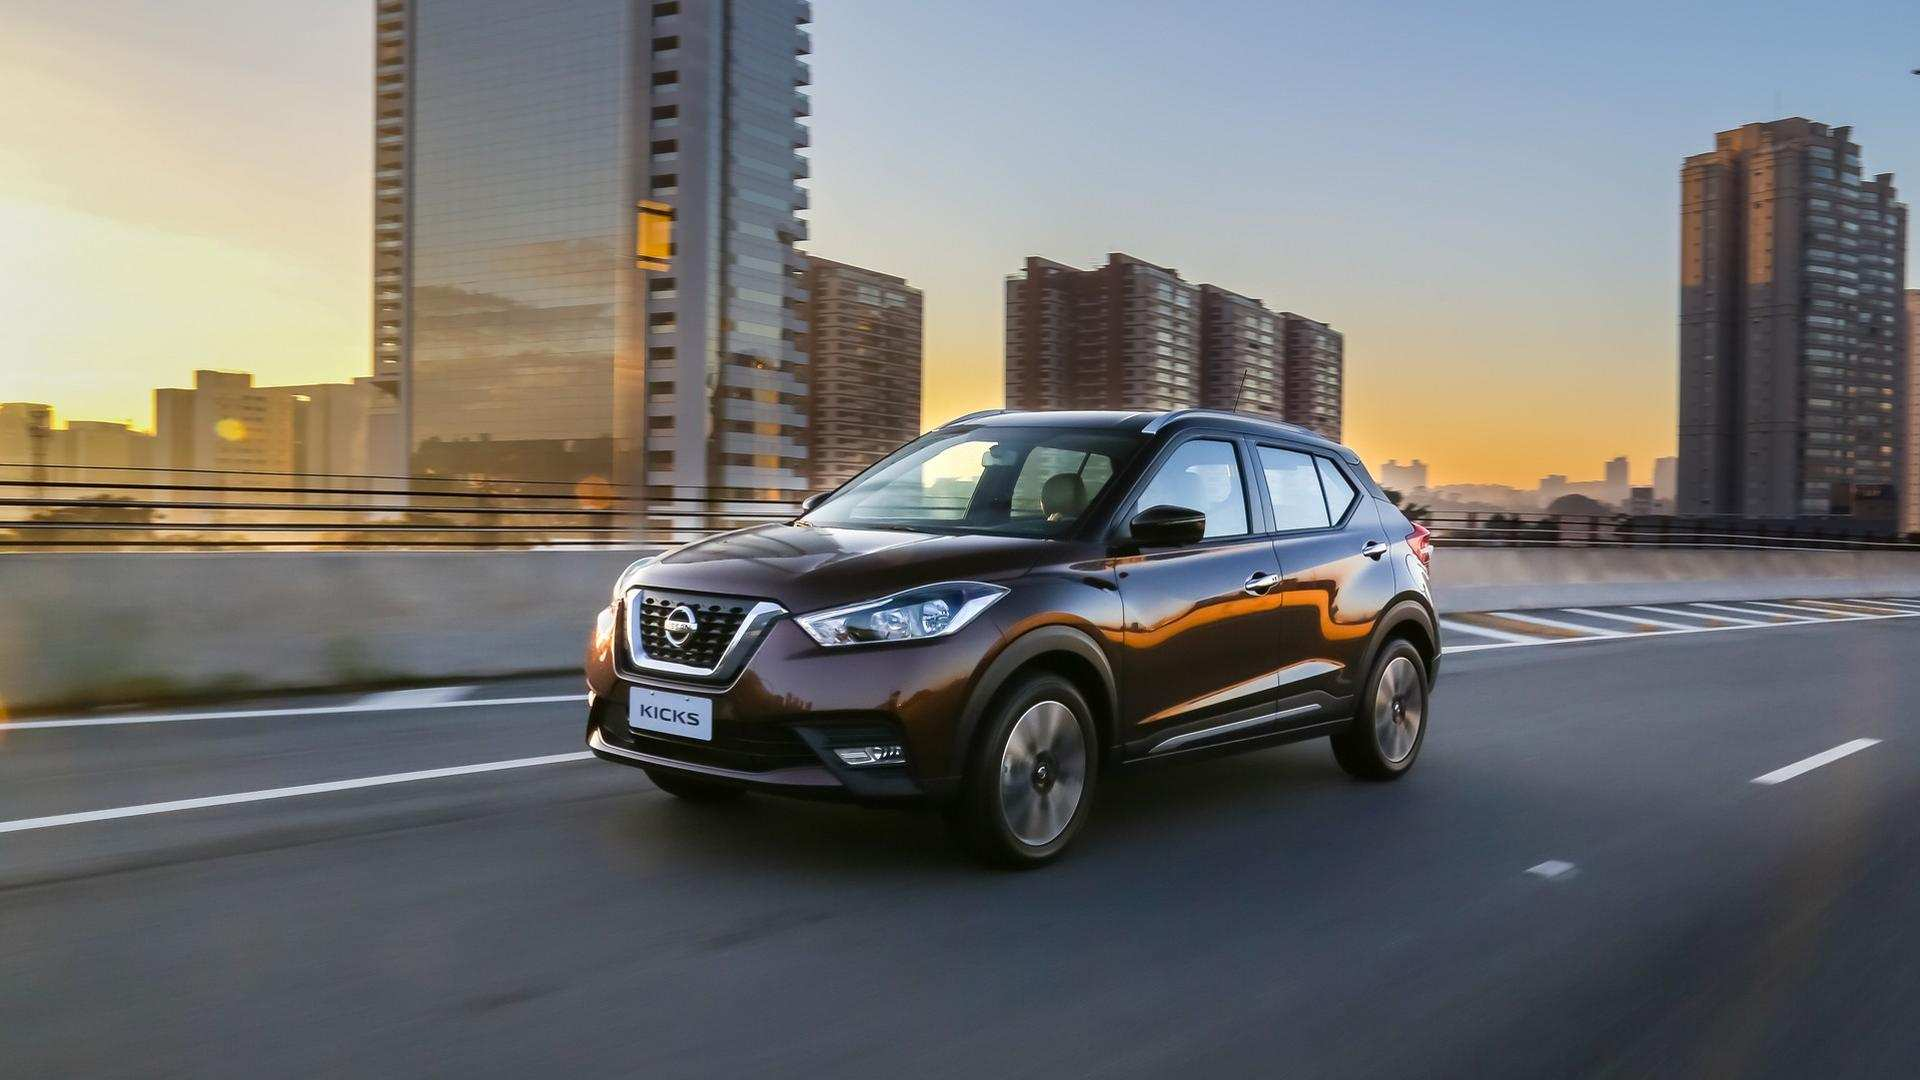 86 All New Nissan Kicks 2020 Mudanças Specs for Nissan Kicks 2020 Mudanças